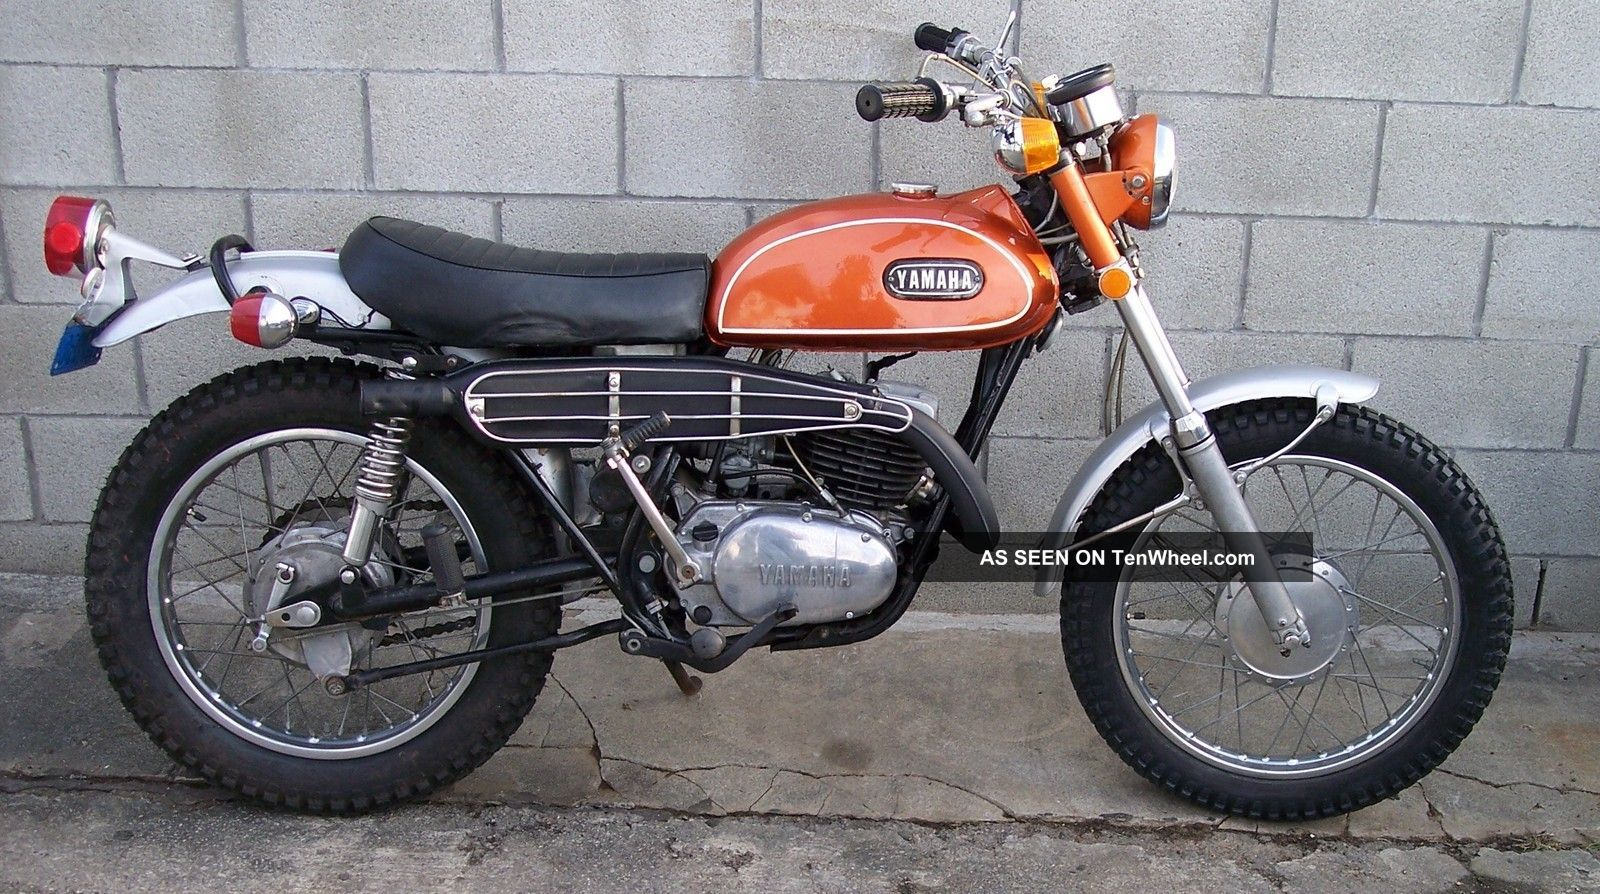 1971 yamaha dt1 250 enduro vintage off road bikes pinterest yamaha 250 vintage bikes and. Black Bedroom Furniture Sets. Home Design Ideas